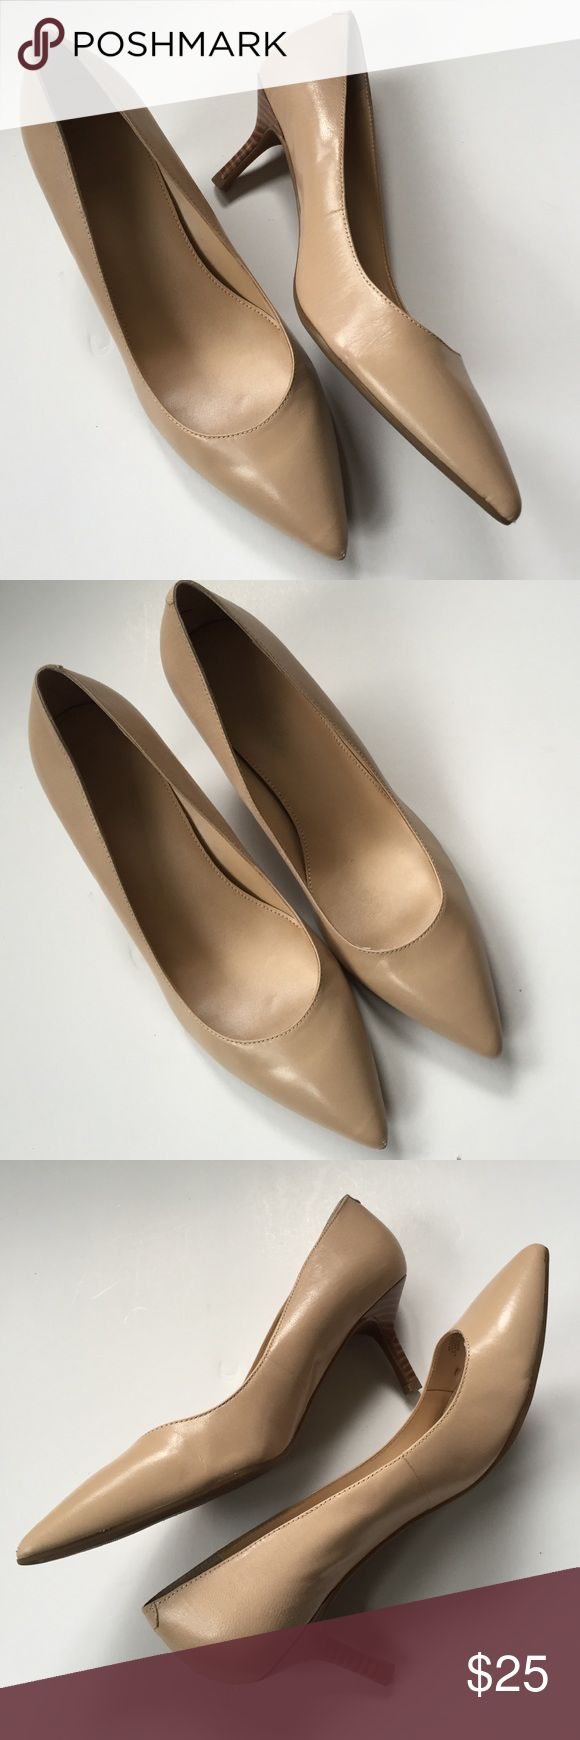 """EUC Marc Fisher leather heels Excellent condition; This is the perfect neutral pump! Soft creamy tan leather with 2 1/2"""" heel. Smoke-free/pet-free home. Marc Fisher Shoes"""